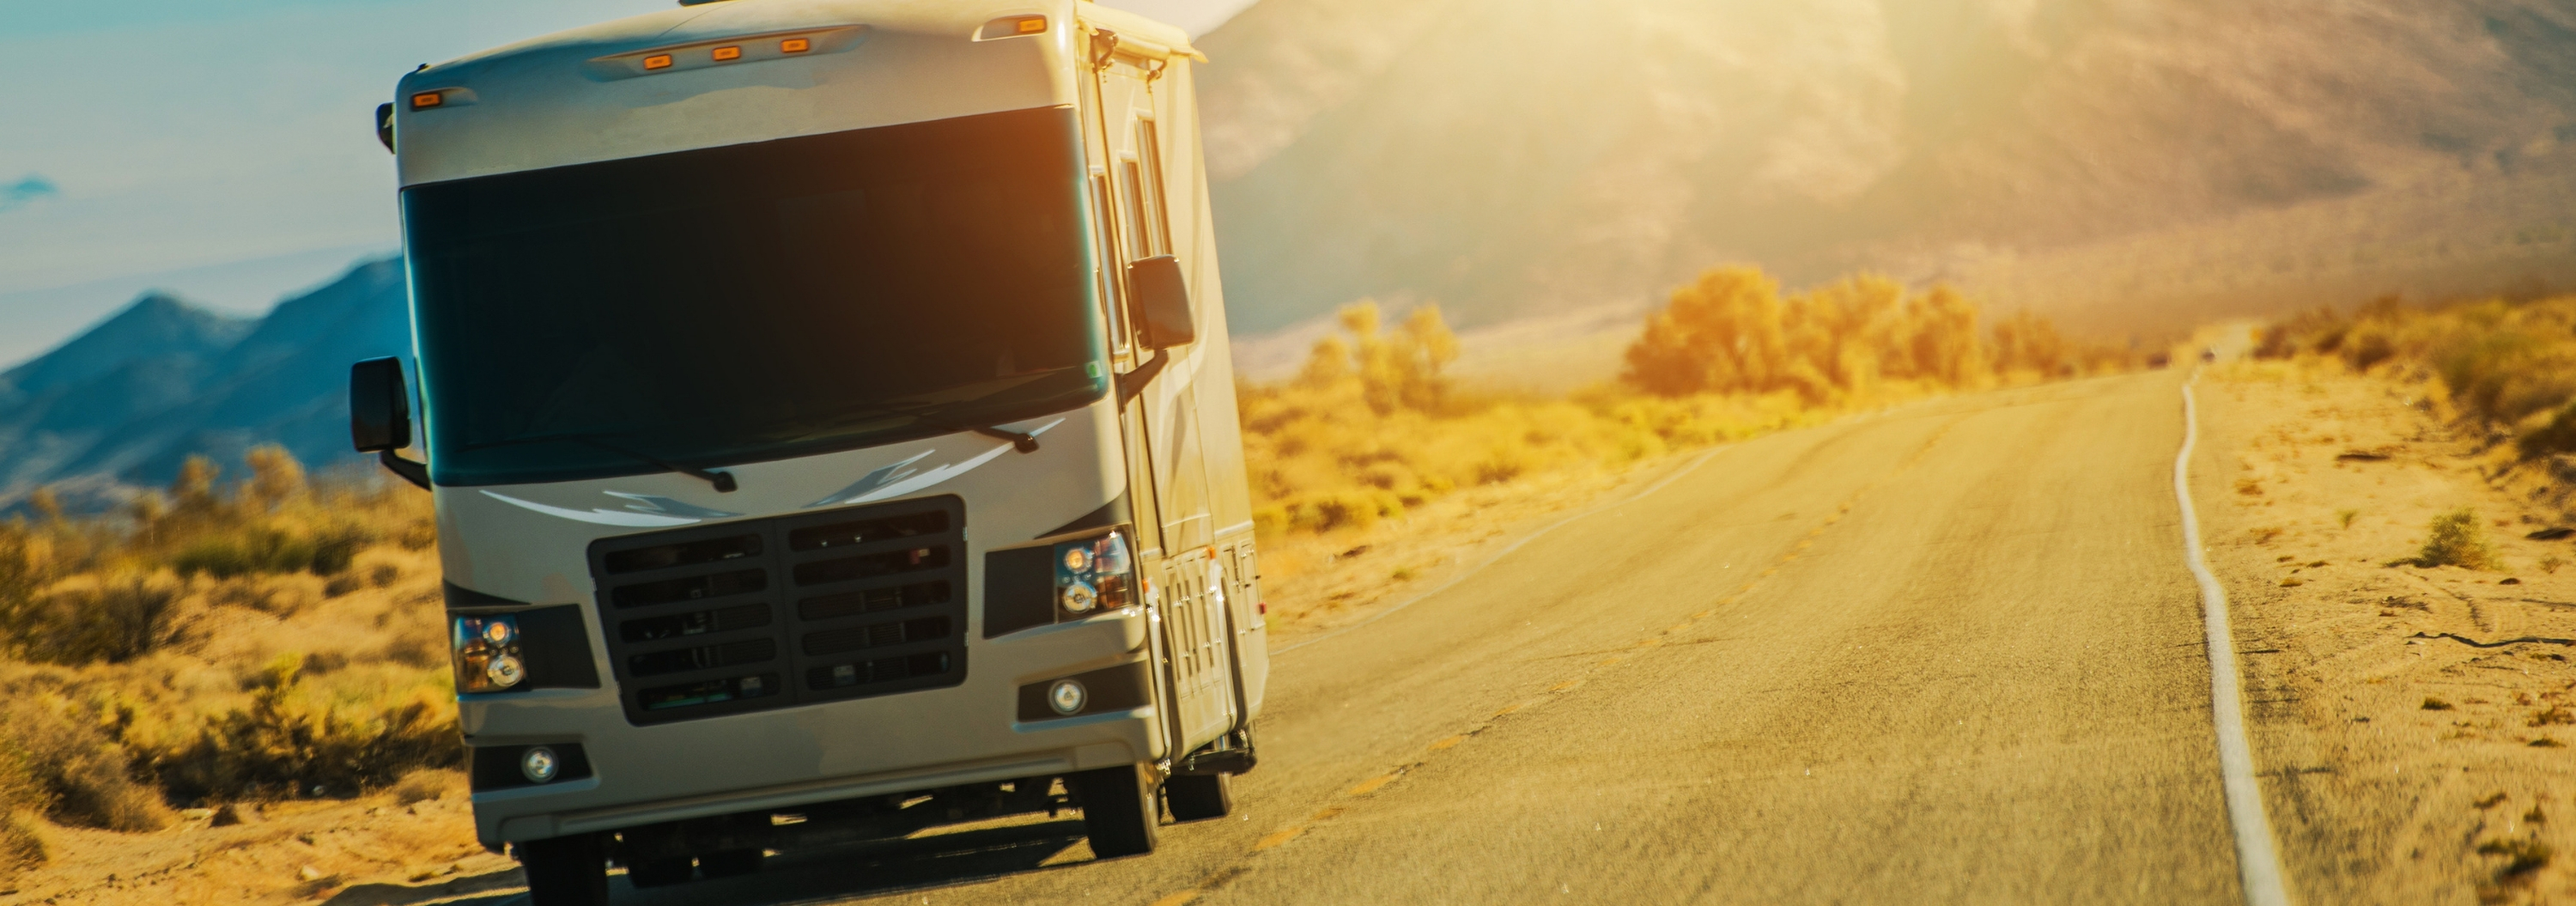 Prevent RV Blowout